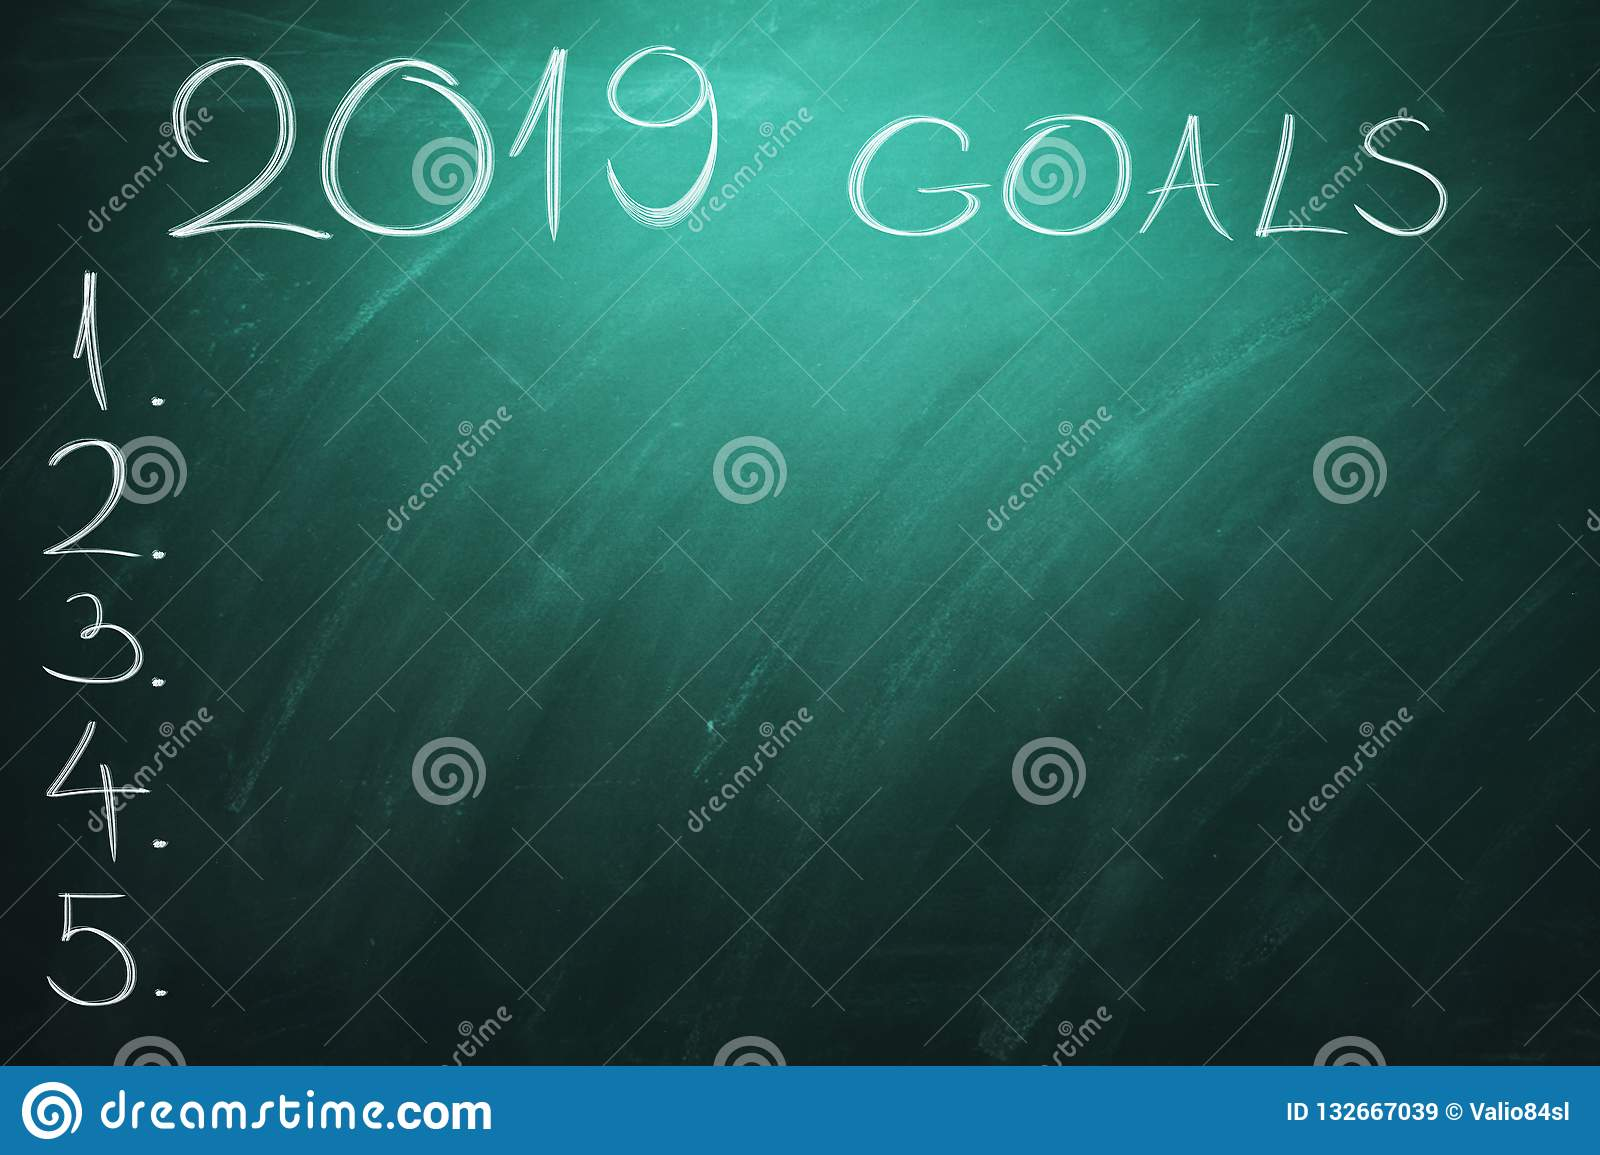 2019 Goals on green board. Chalkboard. New year - new business challenges.